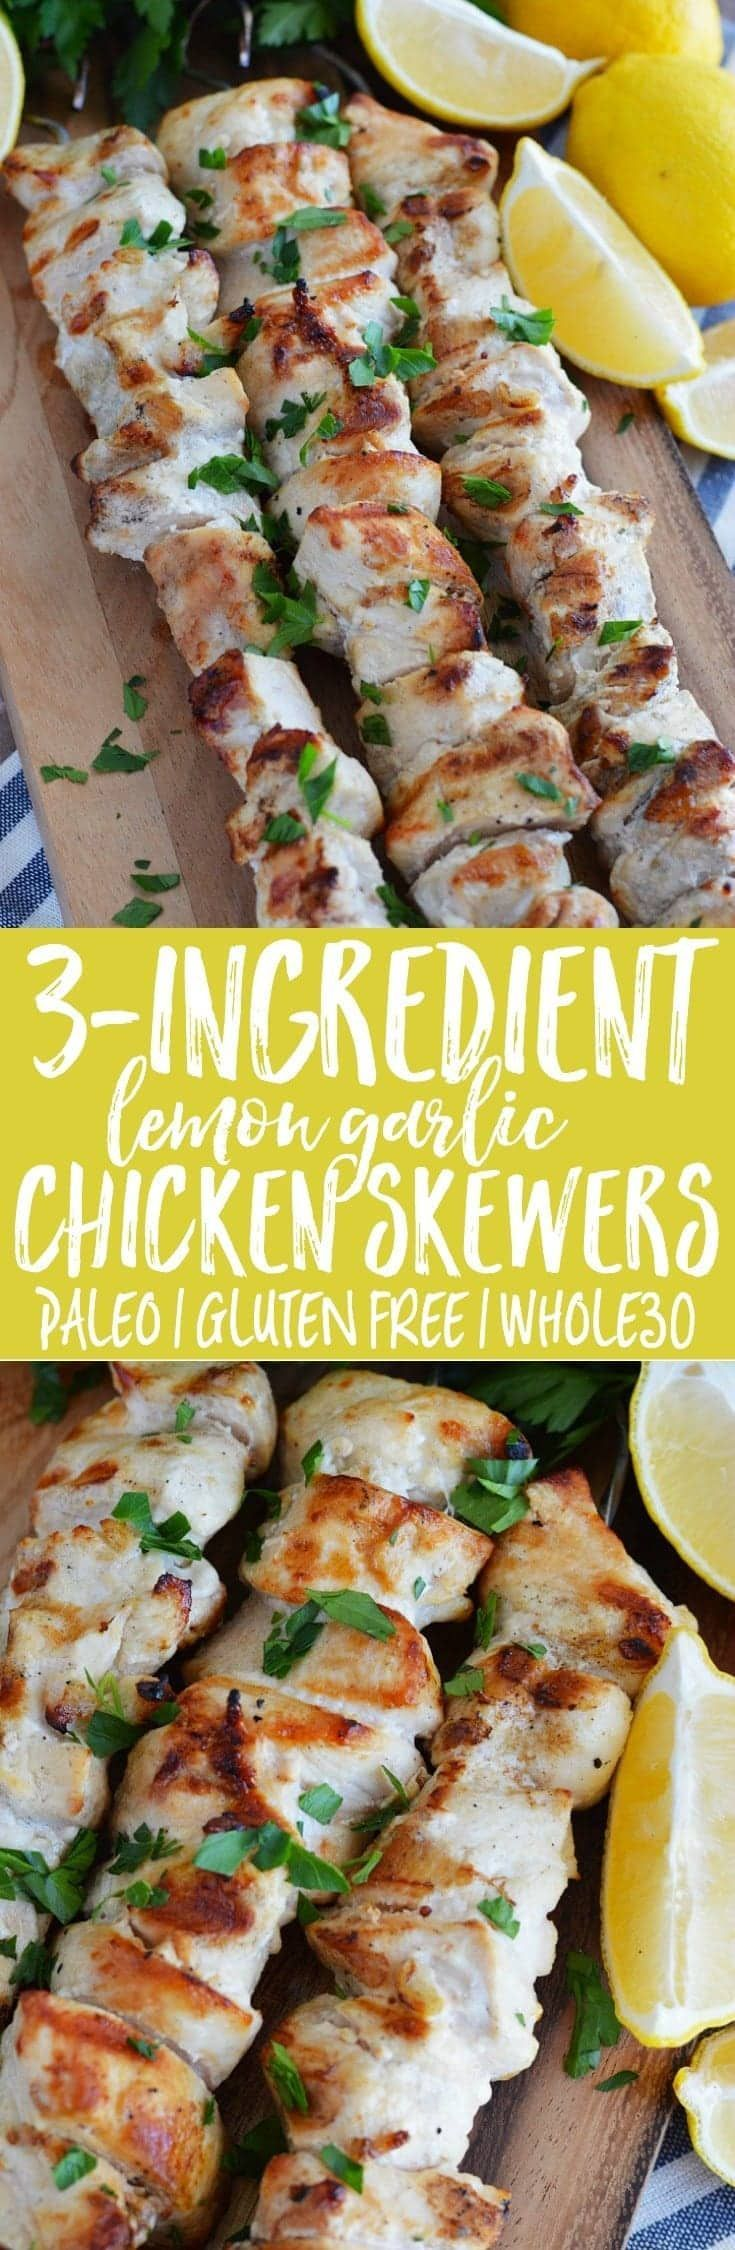 These Three-Ingredient Lemon Garlic Chicken Skewers are make an easy weeknight meal. They're gluten free, paleo, and Whole30, and full of delicious flavor. They're also great for weekly meal-prepping. You guys, I have a confession. I'm way too much of a procrastinator. I mean, I feel like I'm always working on something at the last...